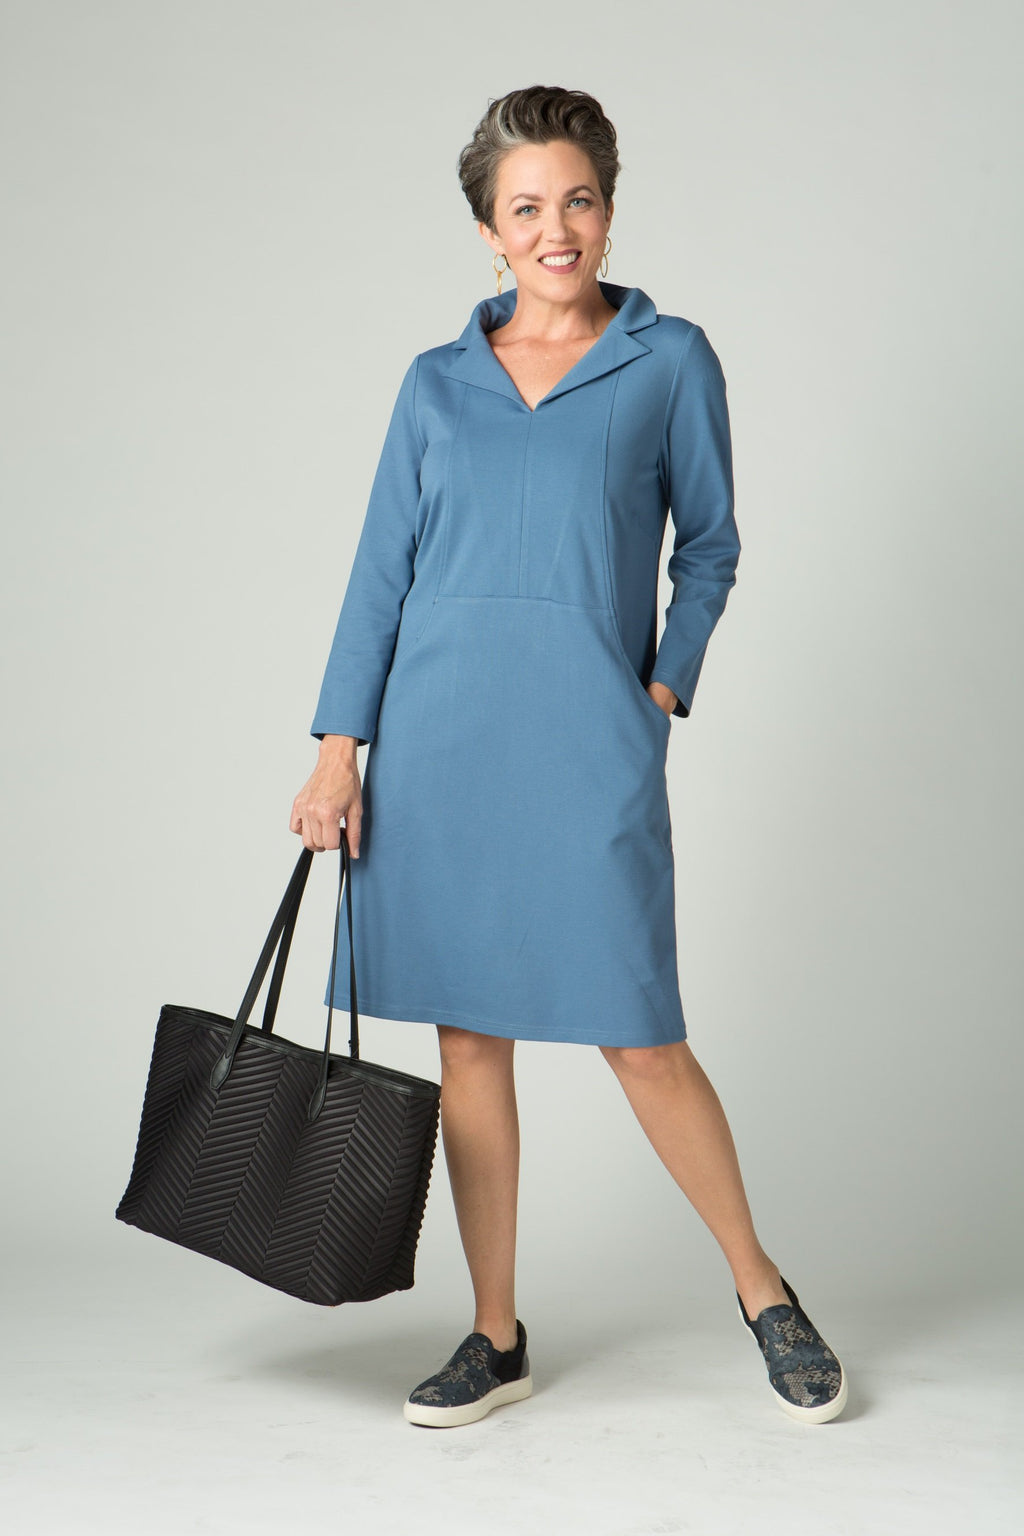 "39"" Long Sleeve Portrait Collar Dress with Pockets"